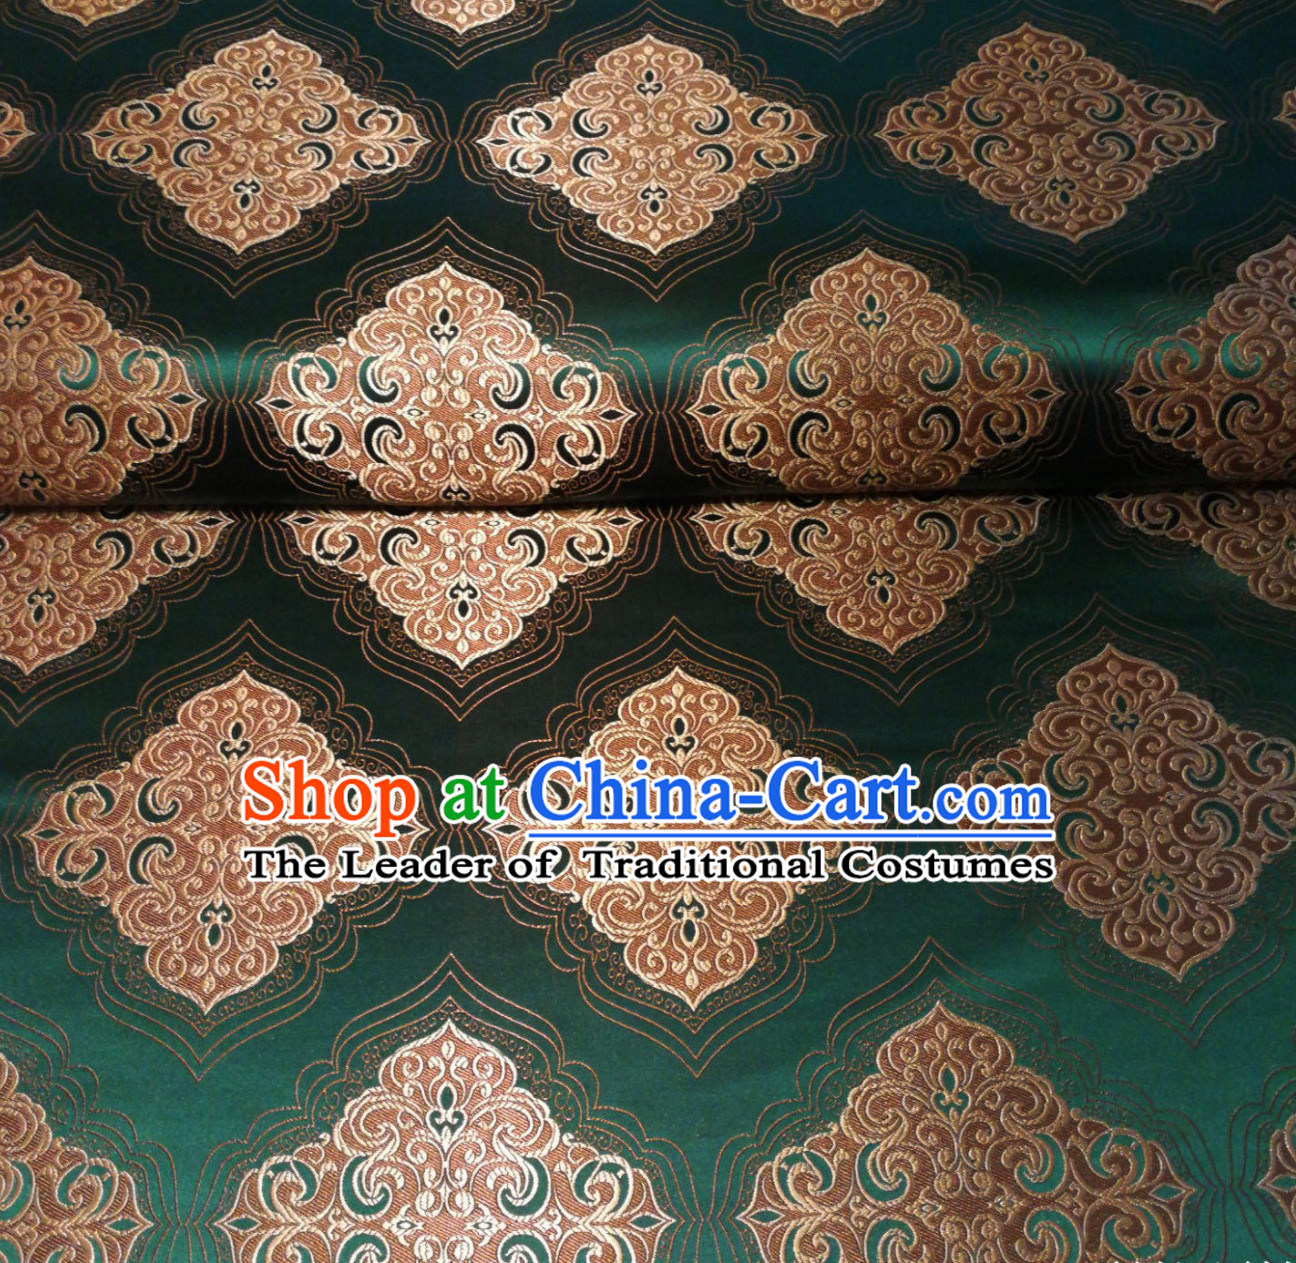 Royal Green Chinese Royal Palace Style Traditional Pattern Design Brocade Fabric Silk Fabric Chinese Fabric Asian Material